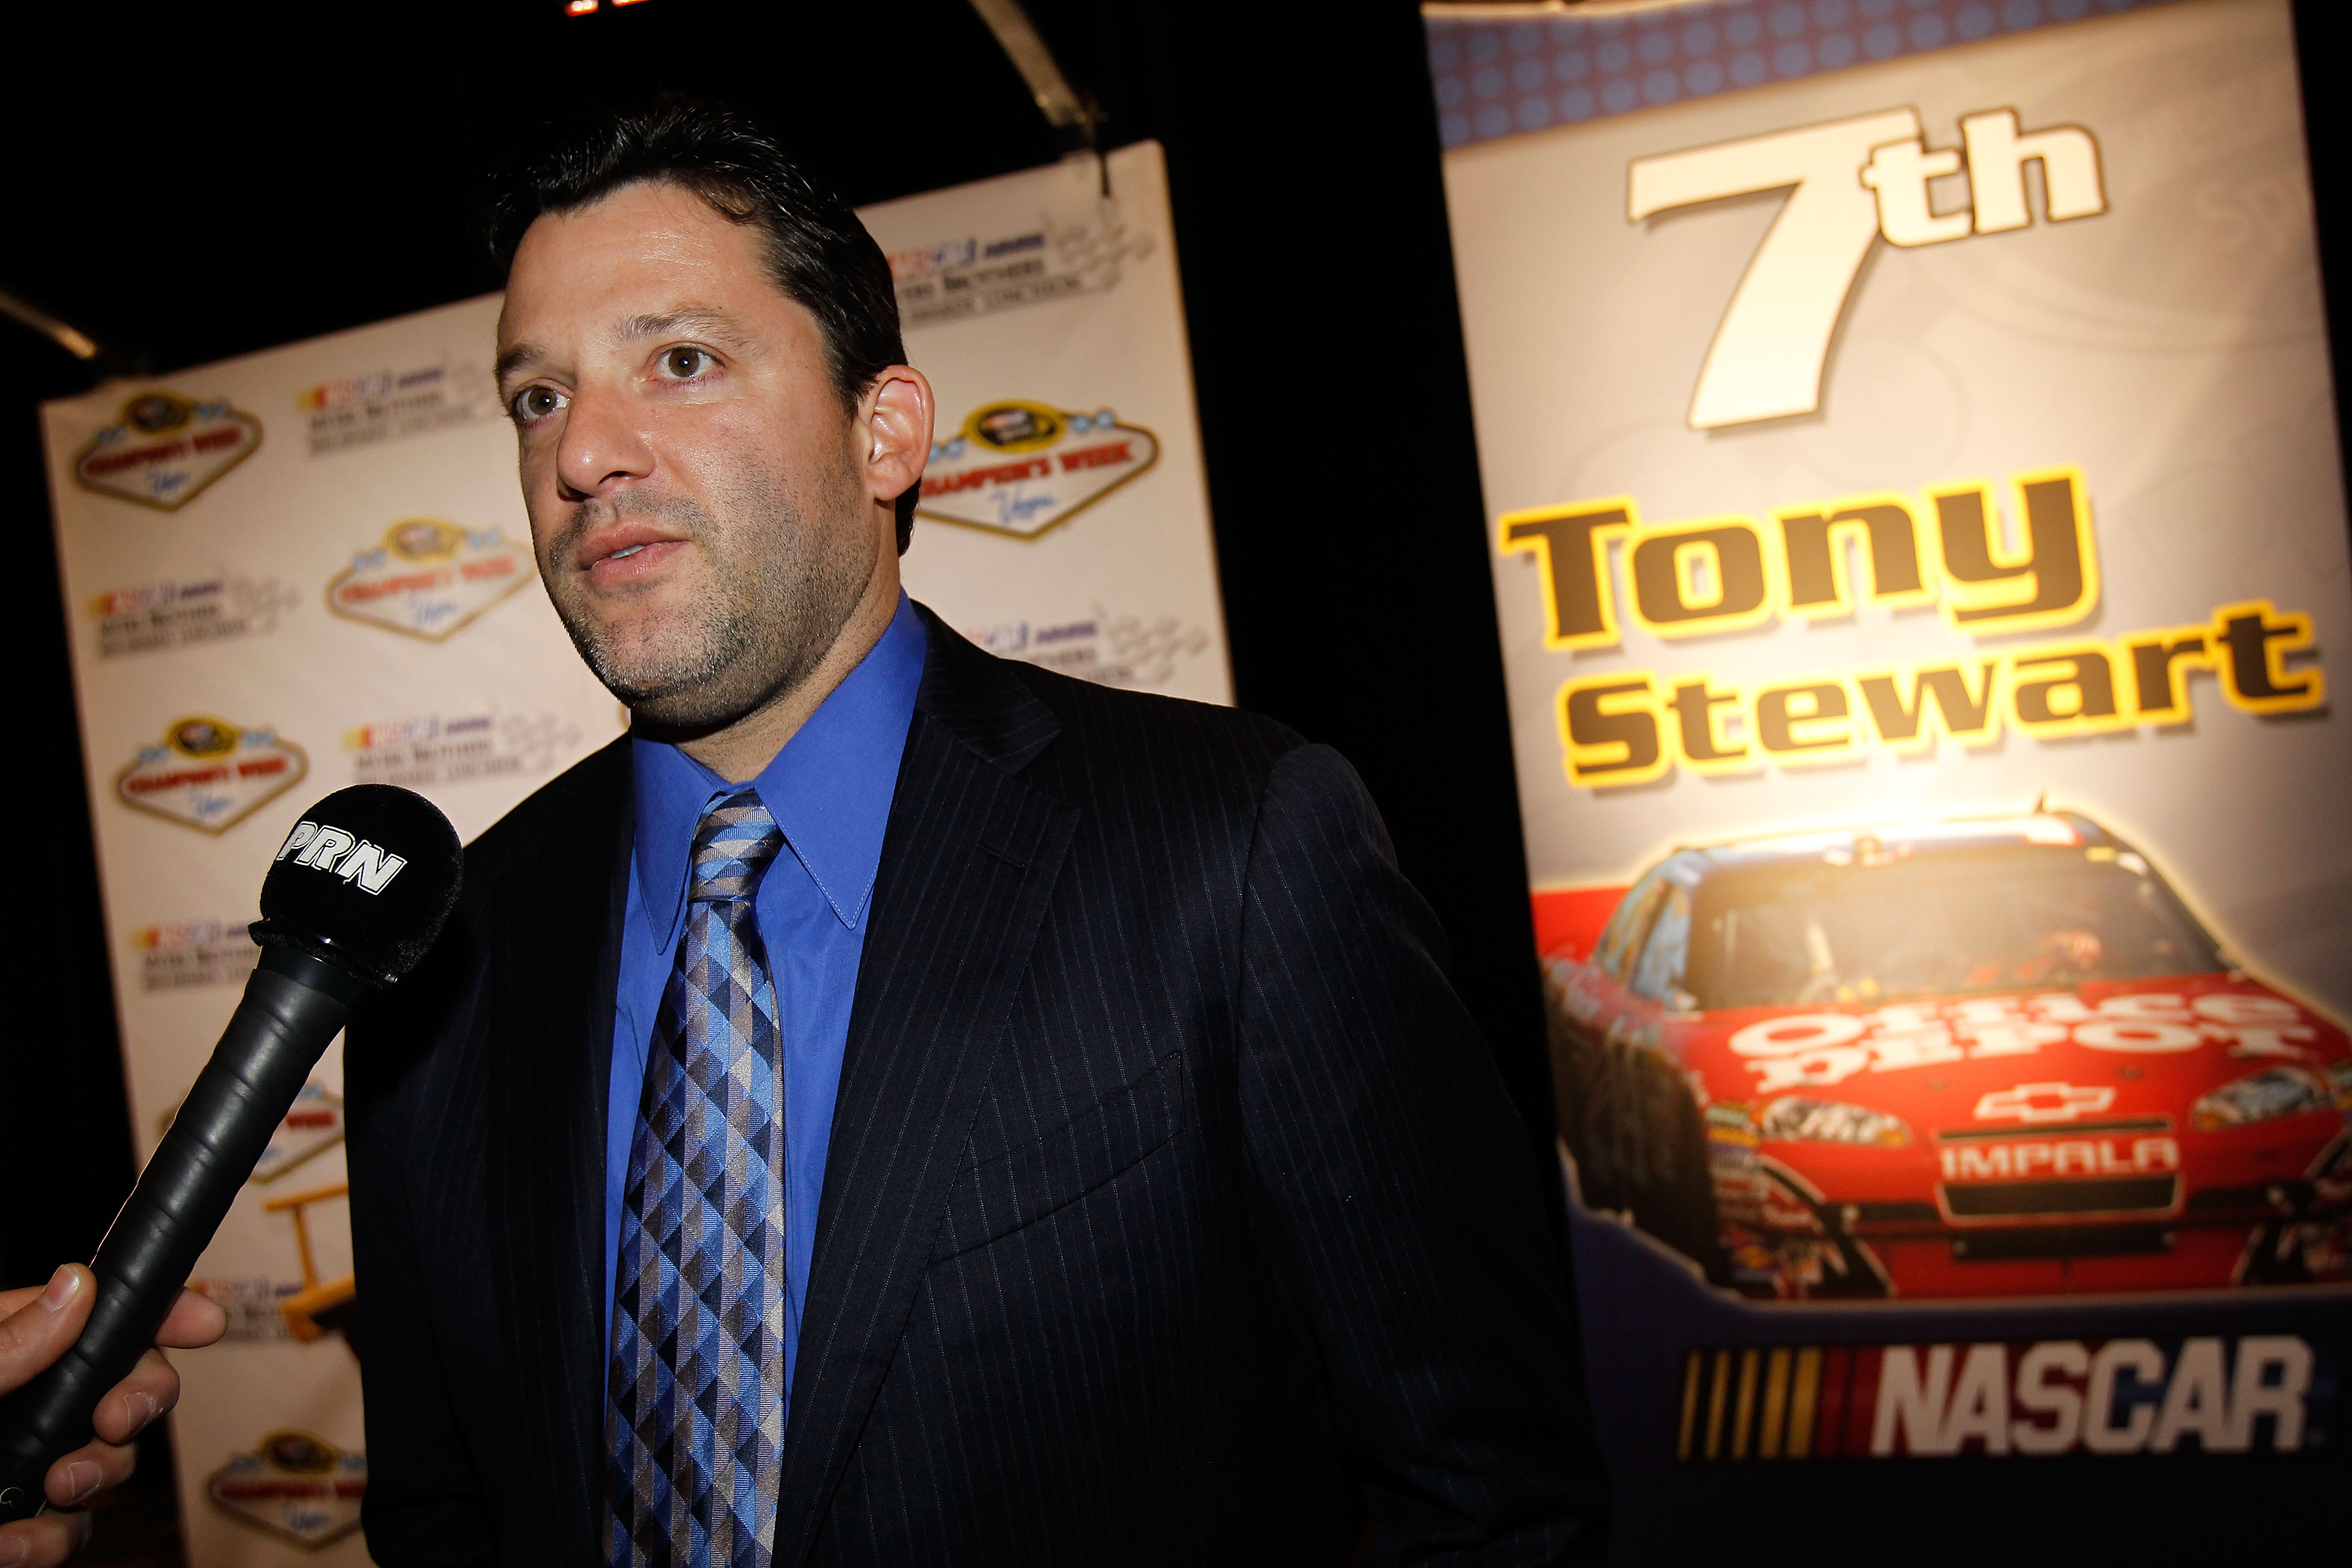 Watching Tony Stewart this week in Las Vegas he is relaxed but not happy with a seventh place finish.